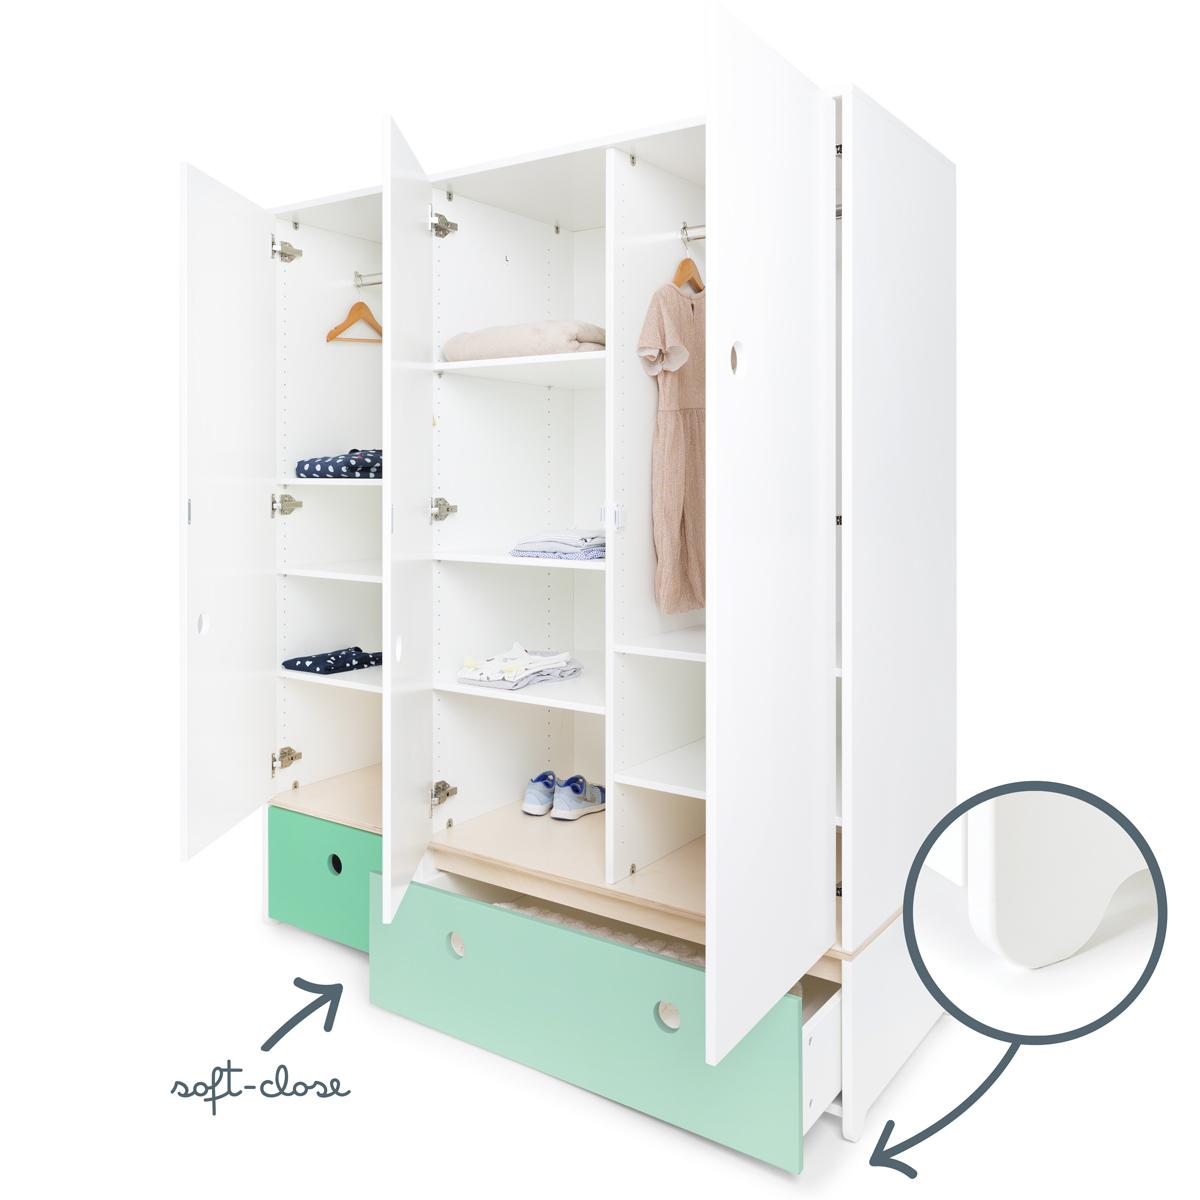 Armoire 3 portes COLORFLEX façades tiroirs sea foam-mint